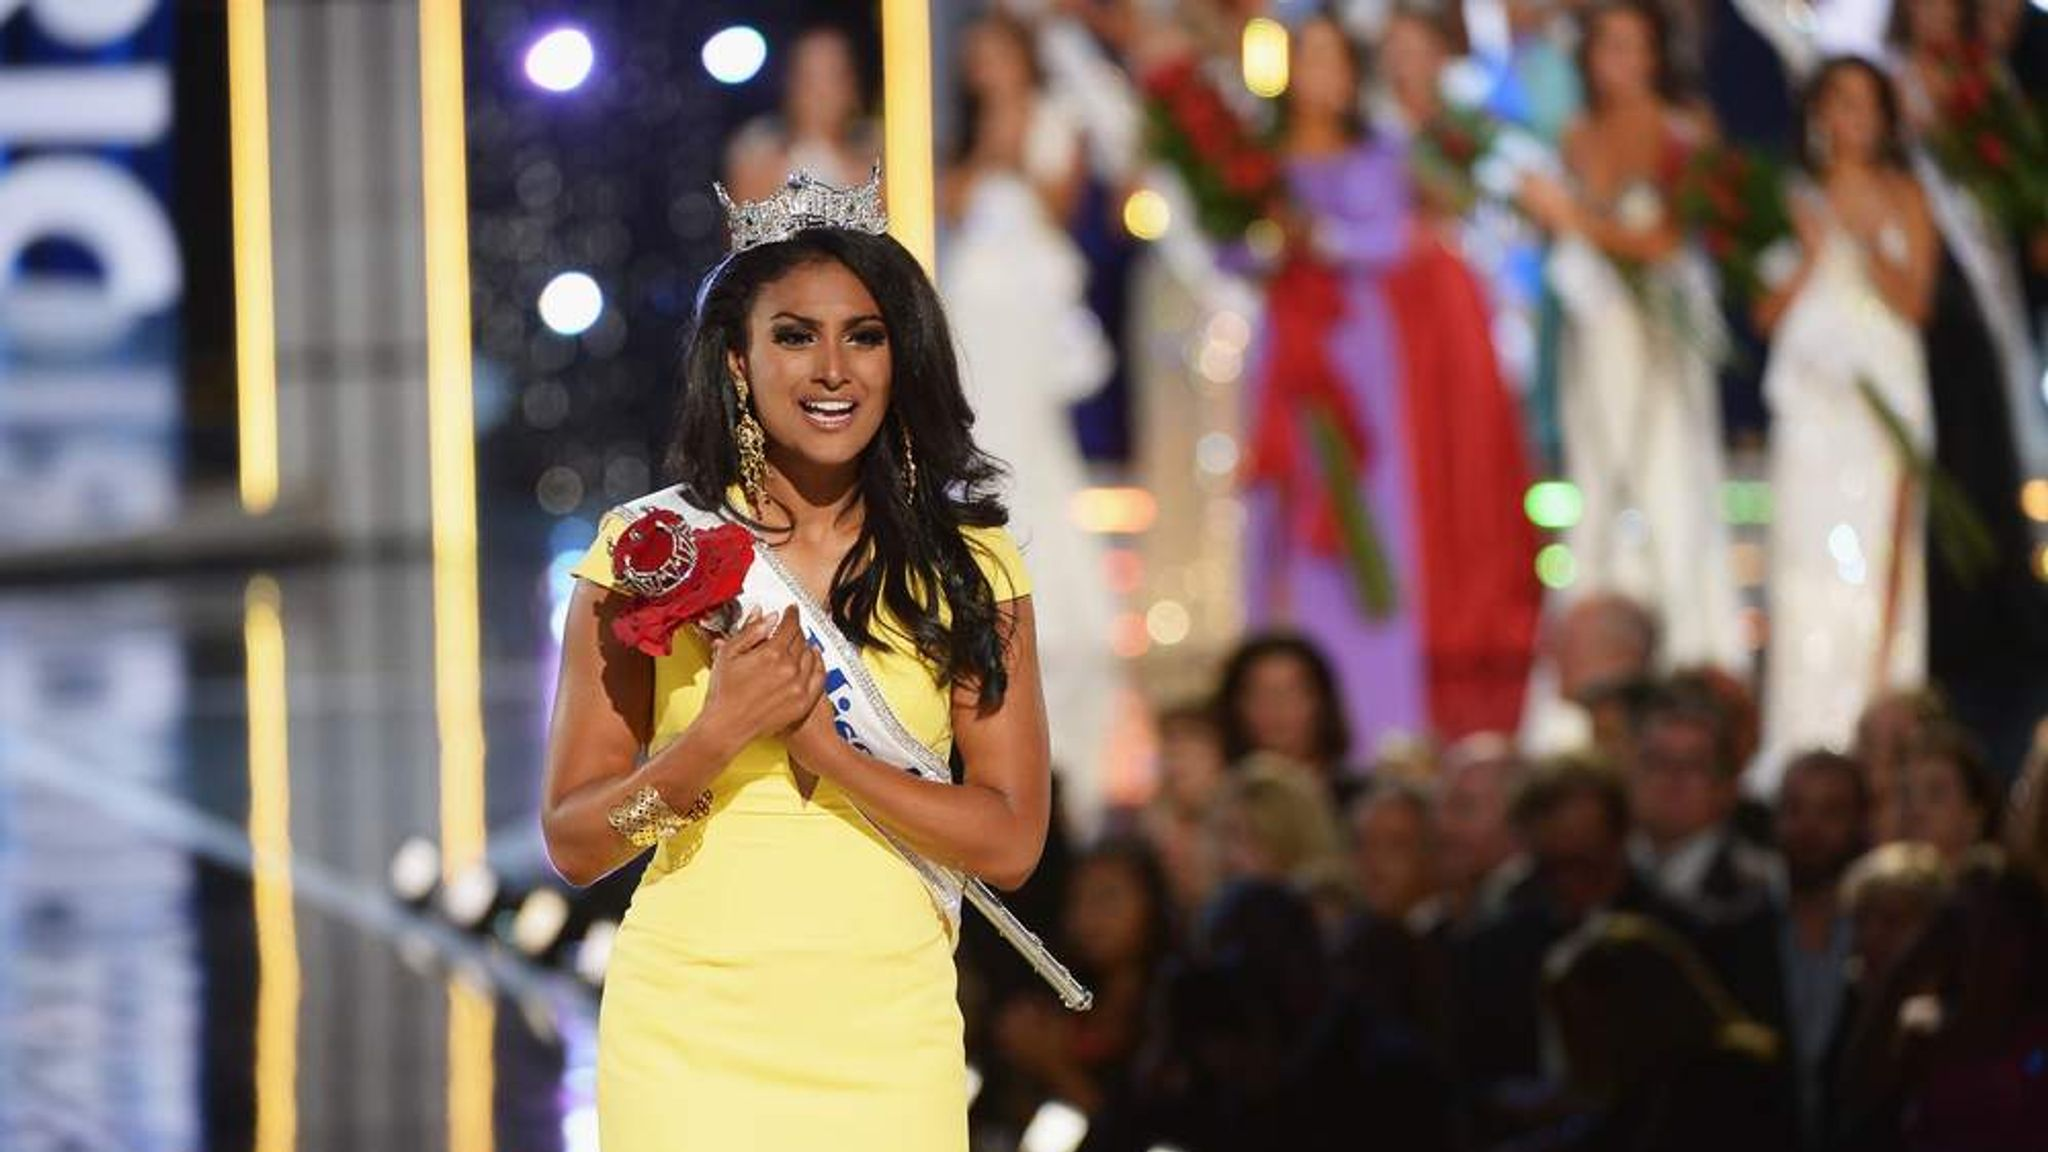 American Idiots 2013 miss america faces abuse over indian descent | us news | sky